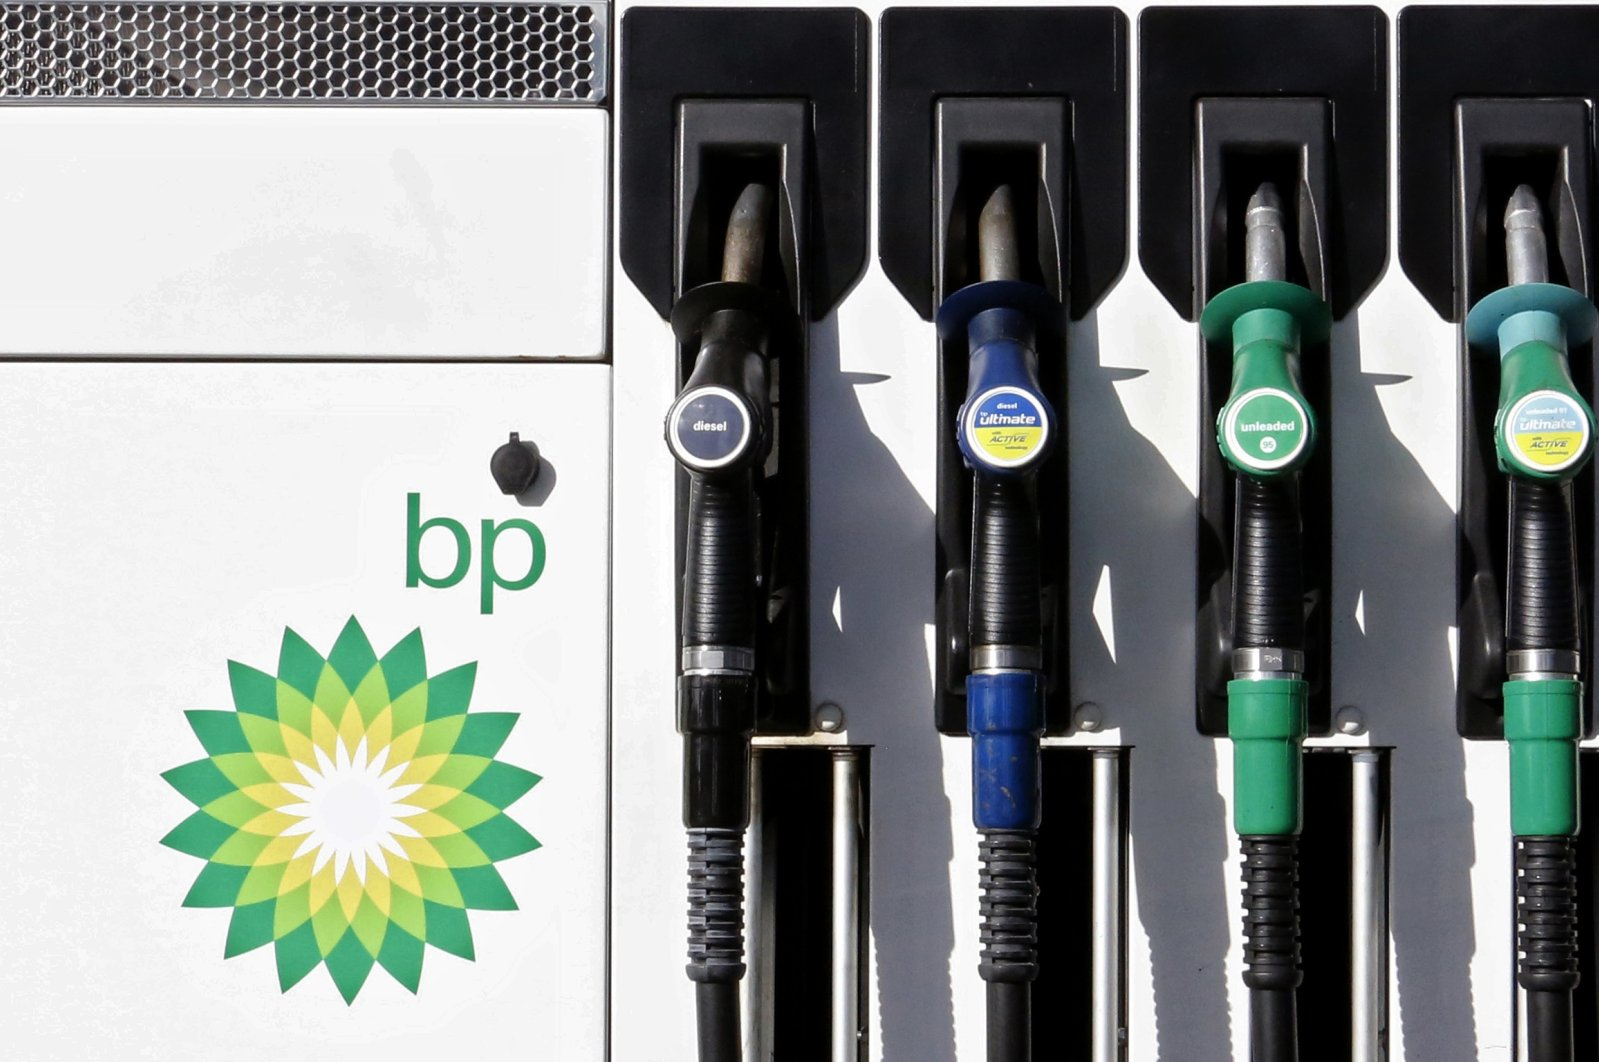 A car fuel pump at a BP petrol station in London, England on Aug. 1, 2017. (AP Photo)